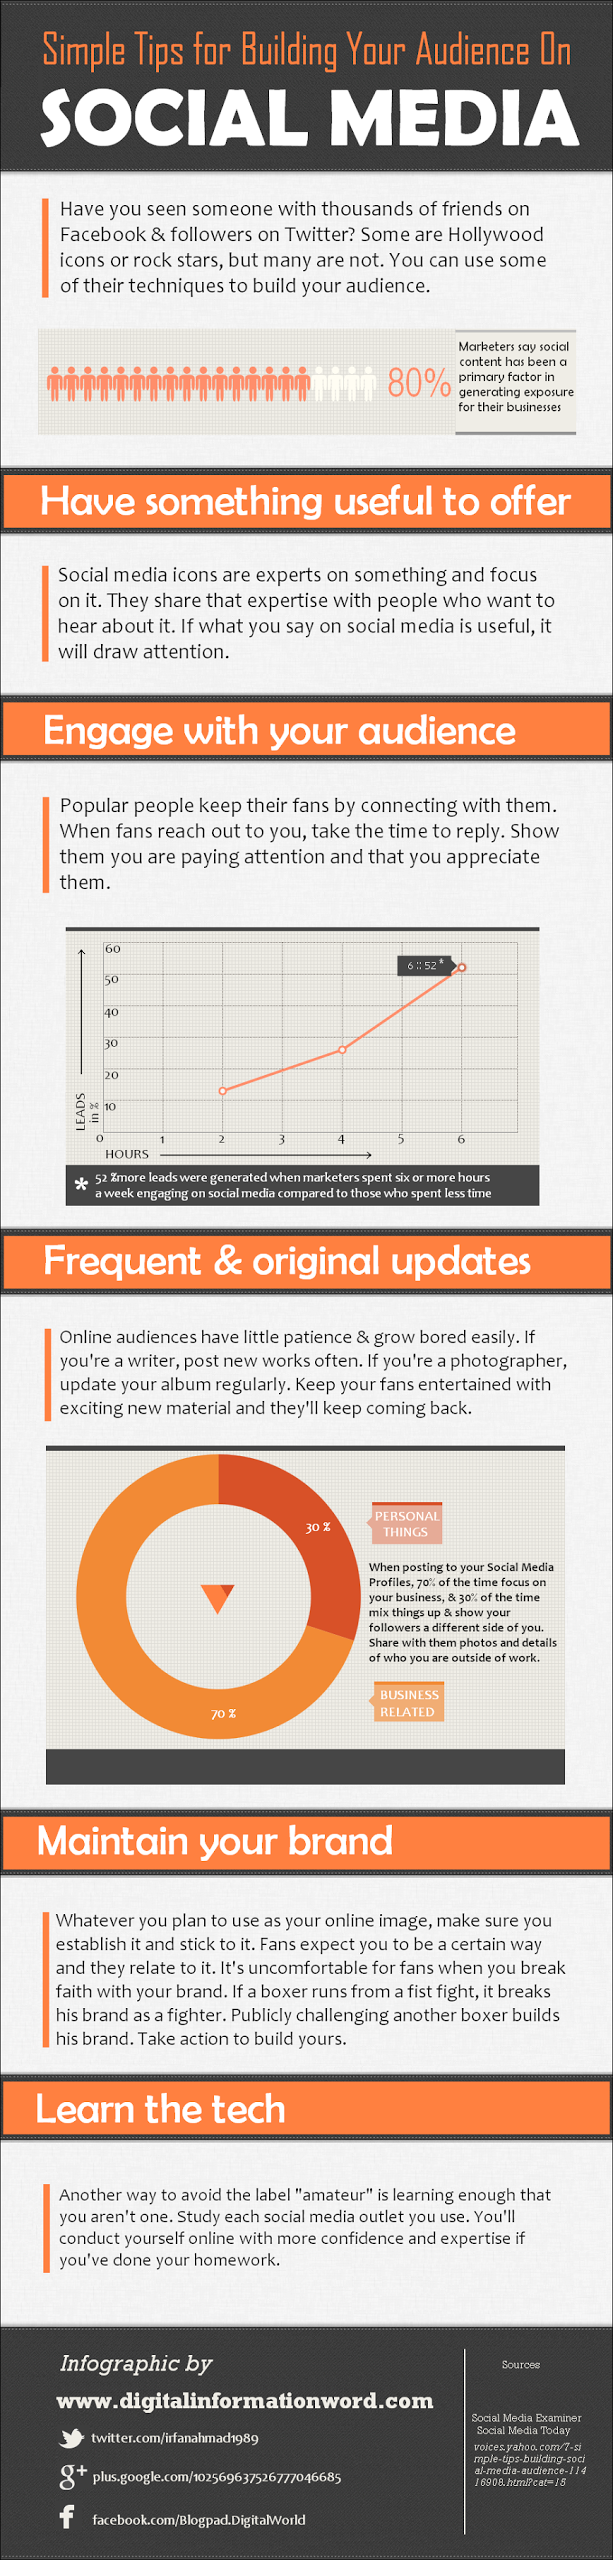 simple tips for building your audience on social media infographic